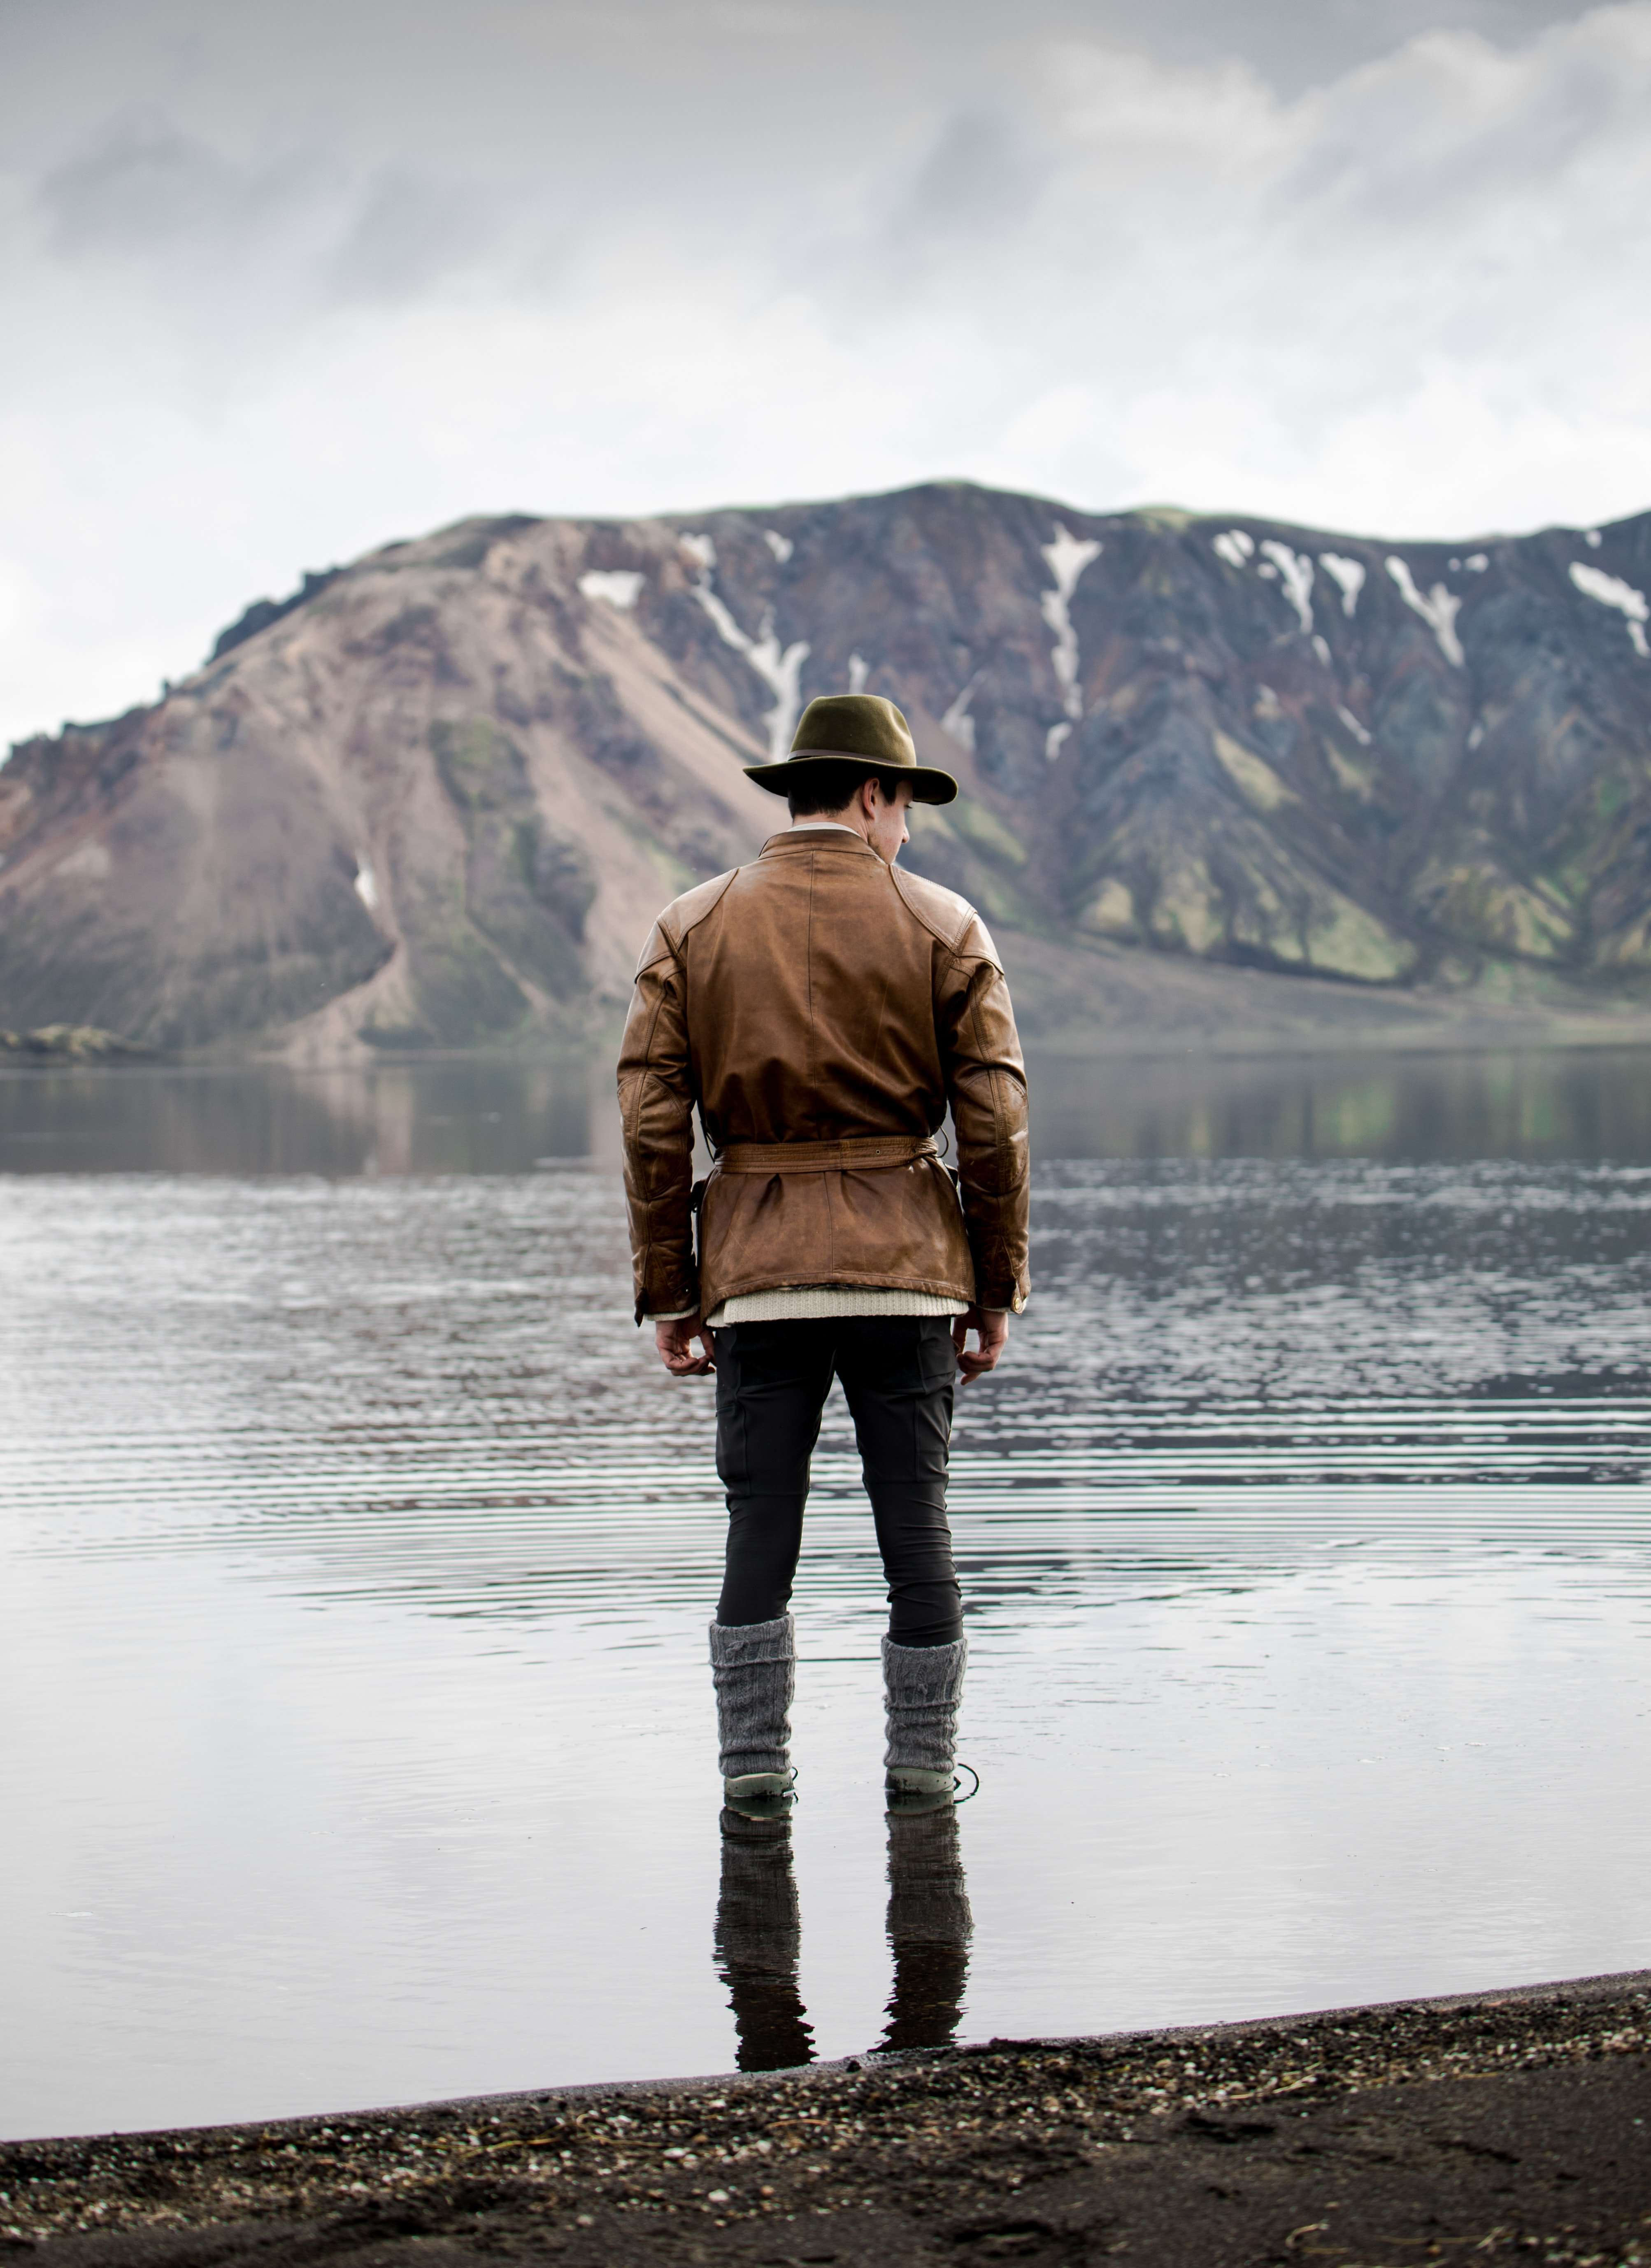 man standing in body of water facing toward mountain